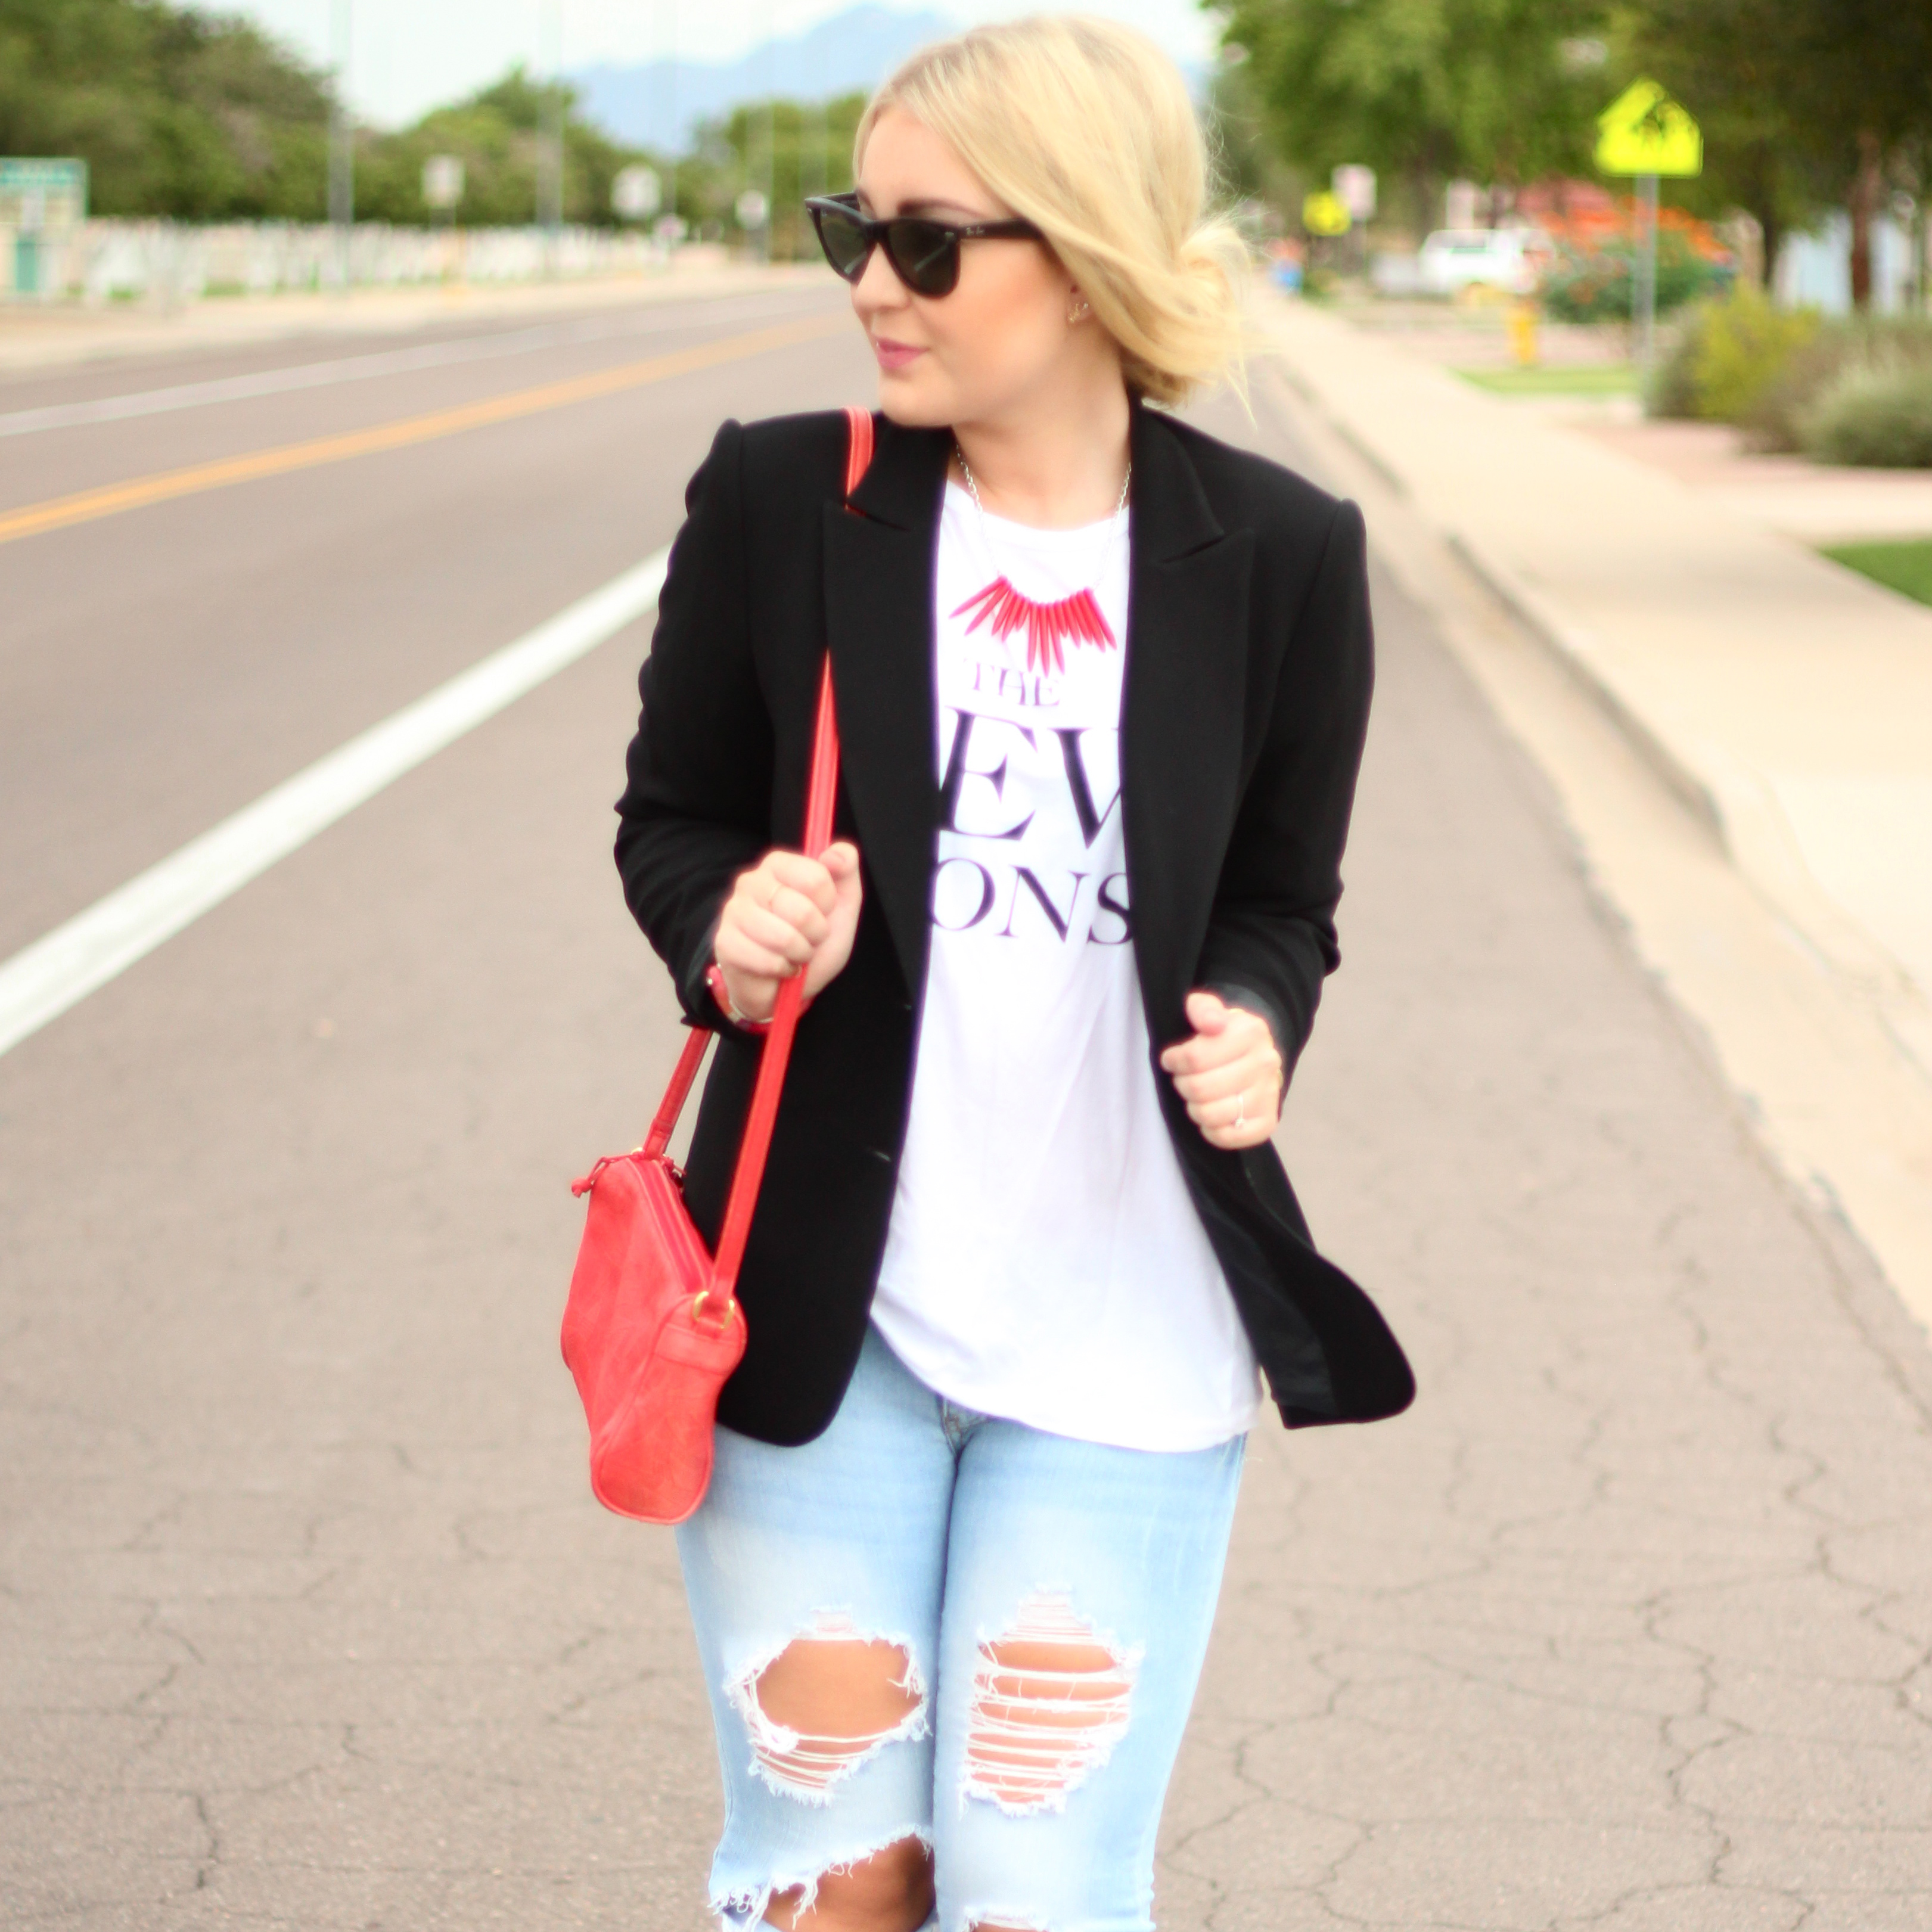 Skinny Jeans: My Easy Formula for Dressing Up Skinnies